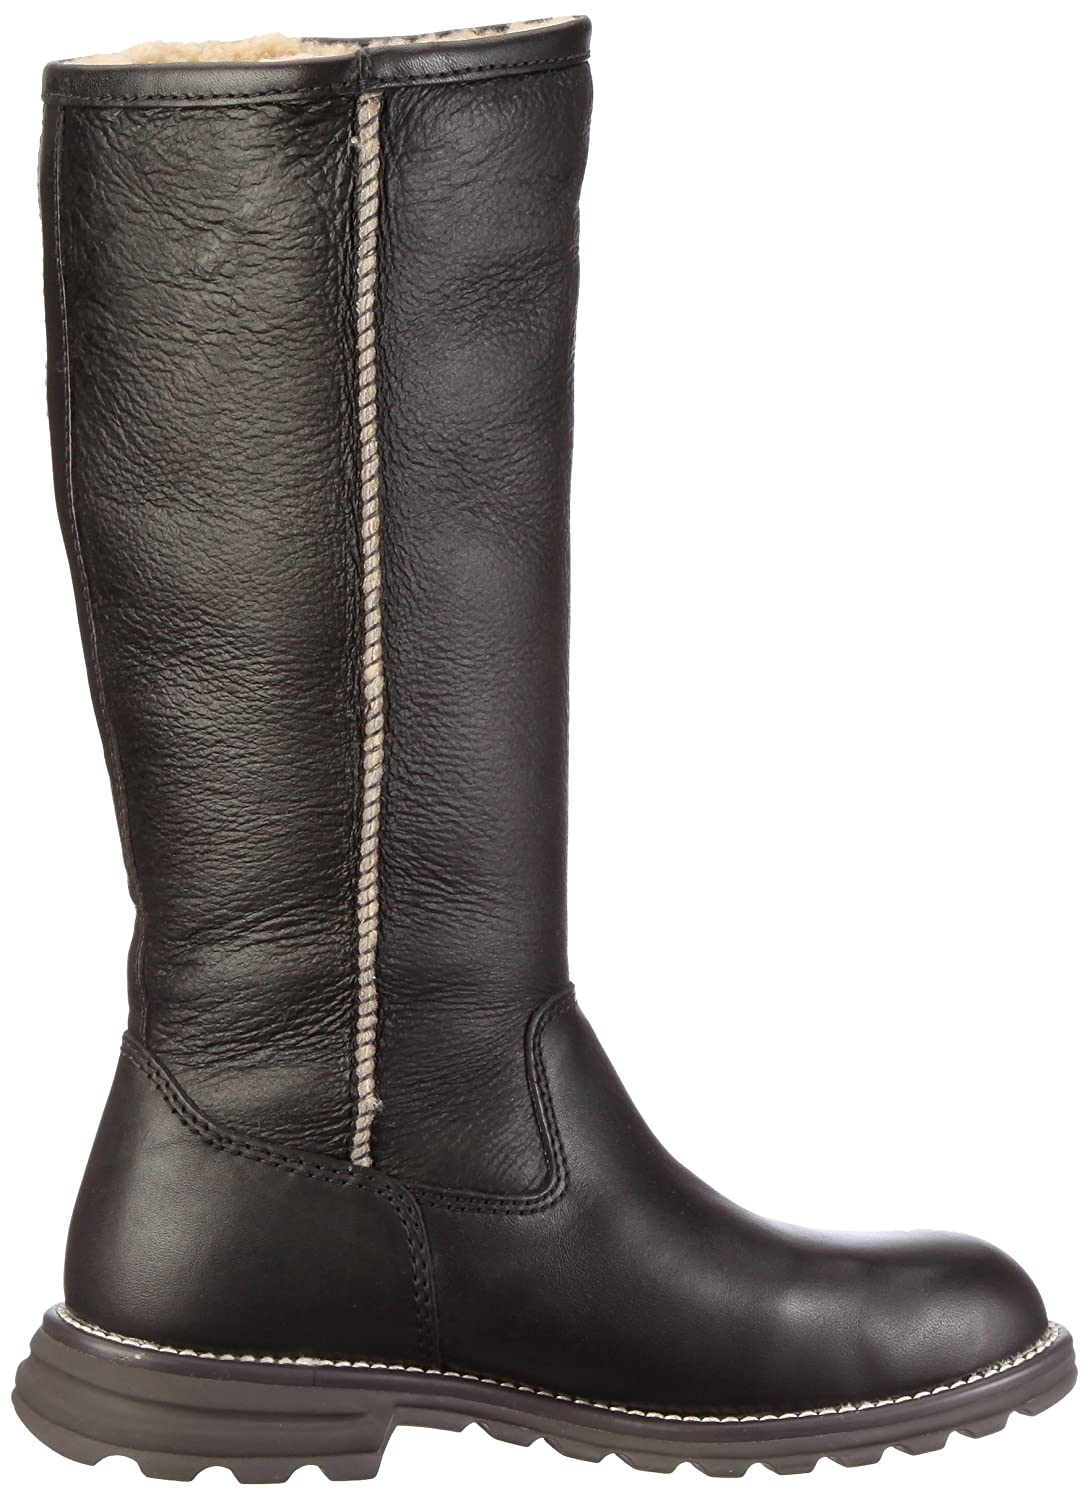 15f7c7b2734 UGG Brooks Tall 5490, Women's Boots